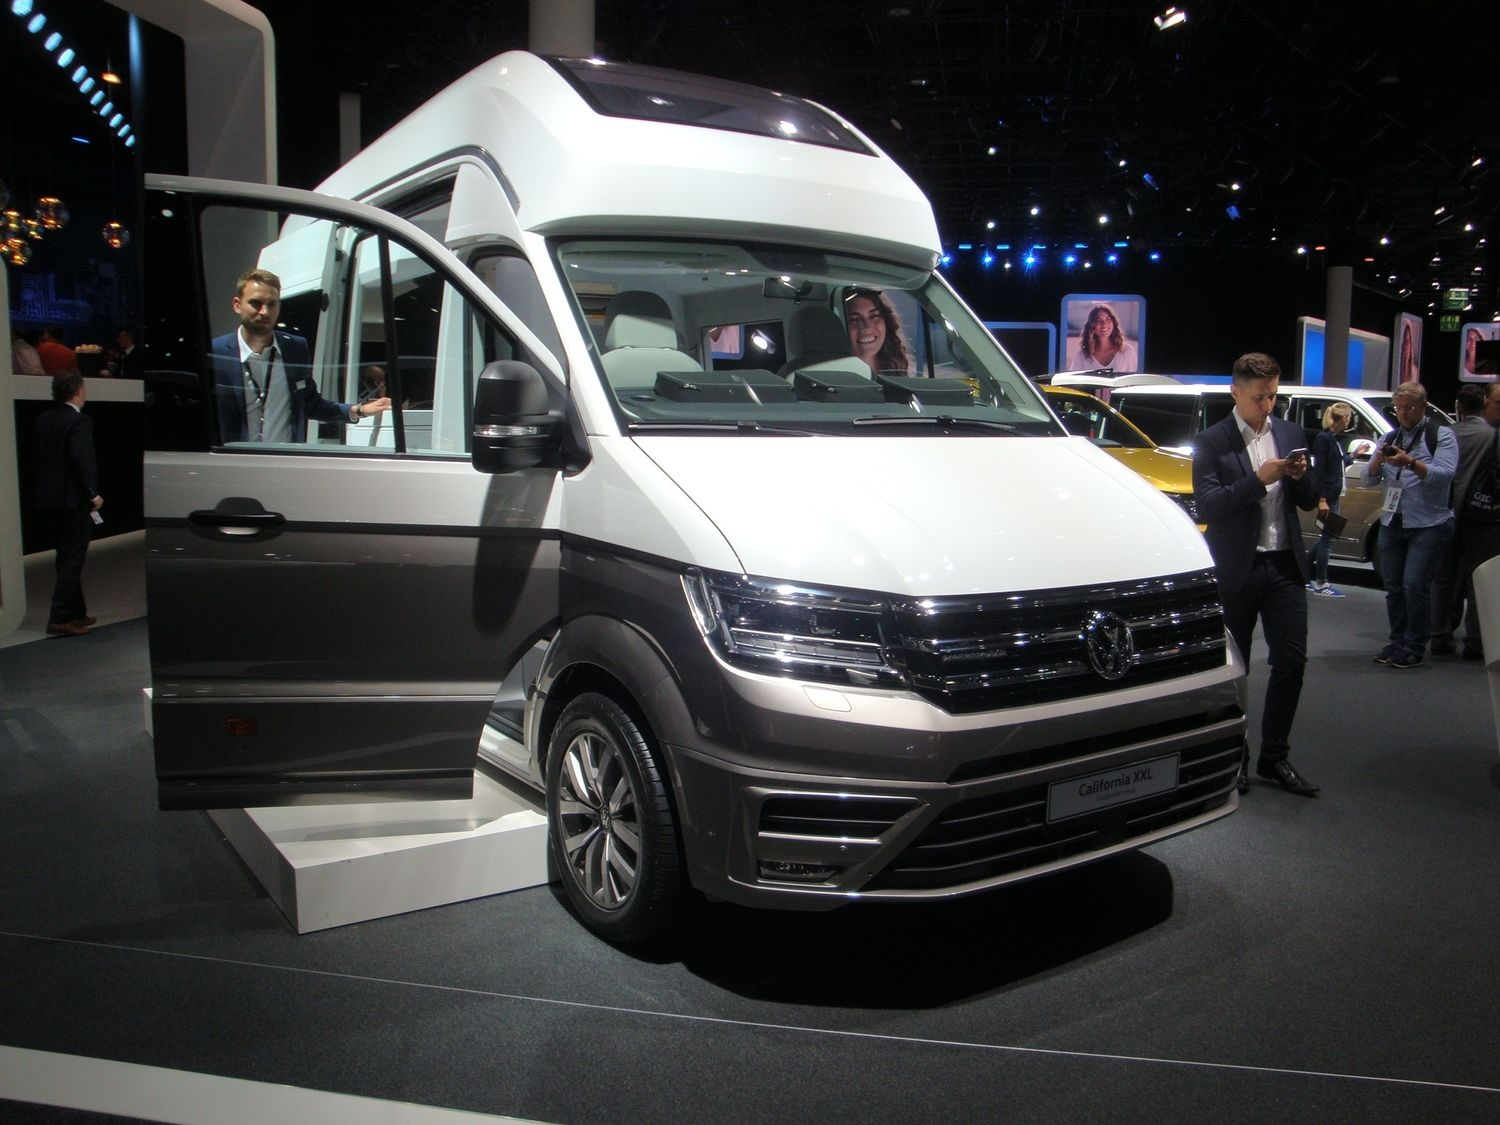 Salon Du Bourget 2017 Tarif Volkswagen California Xxl Comme Son Nom L Indique En Direct Du